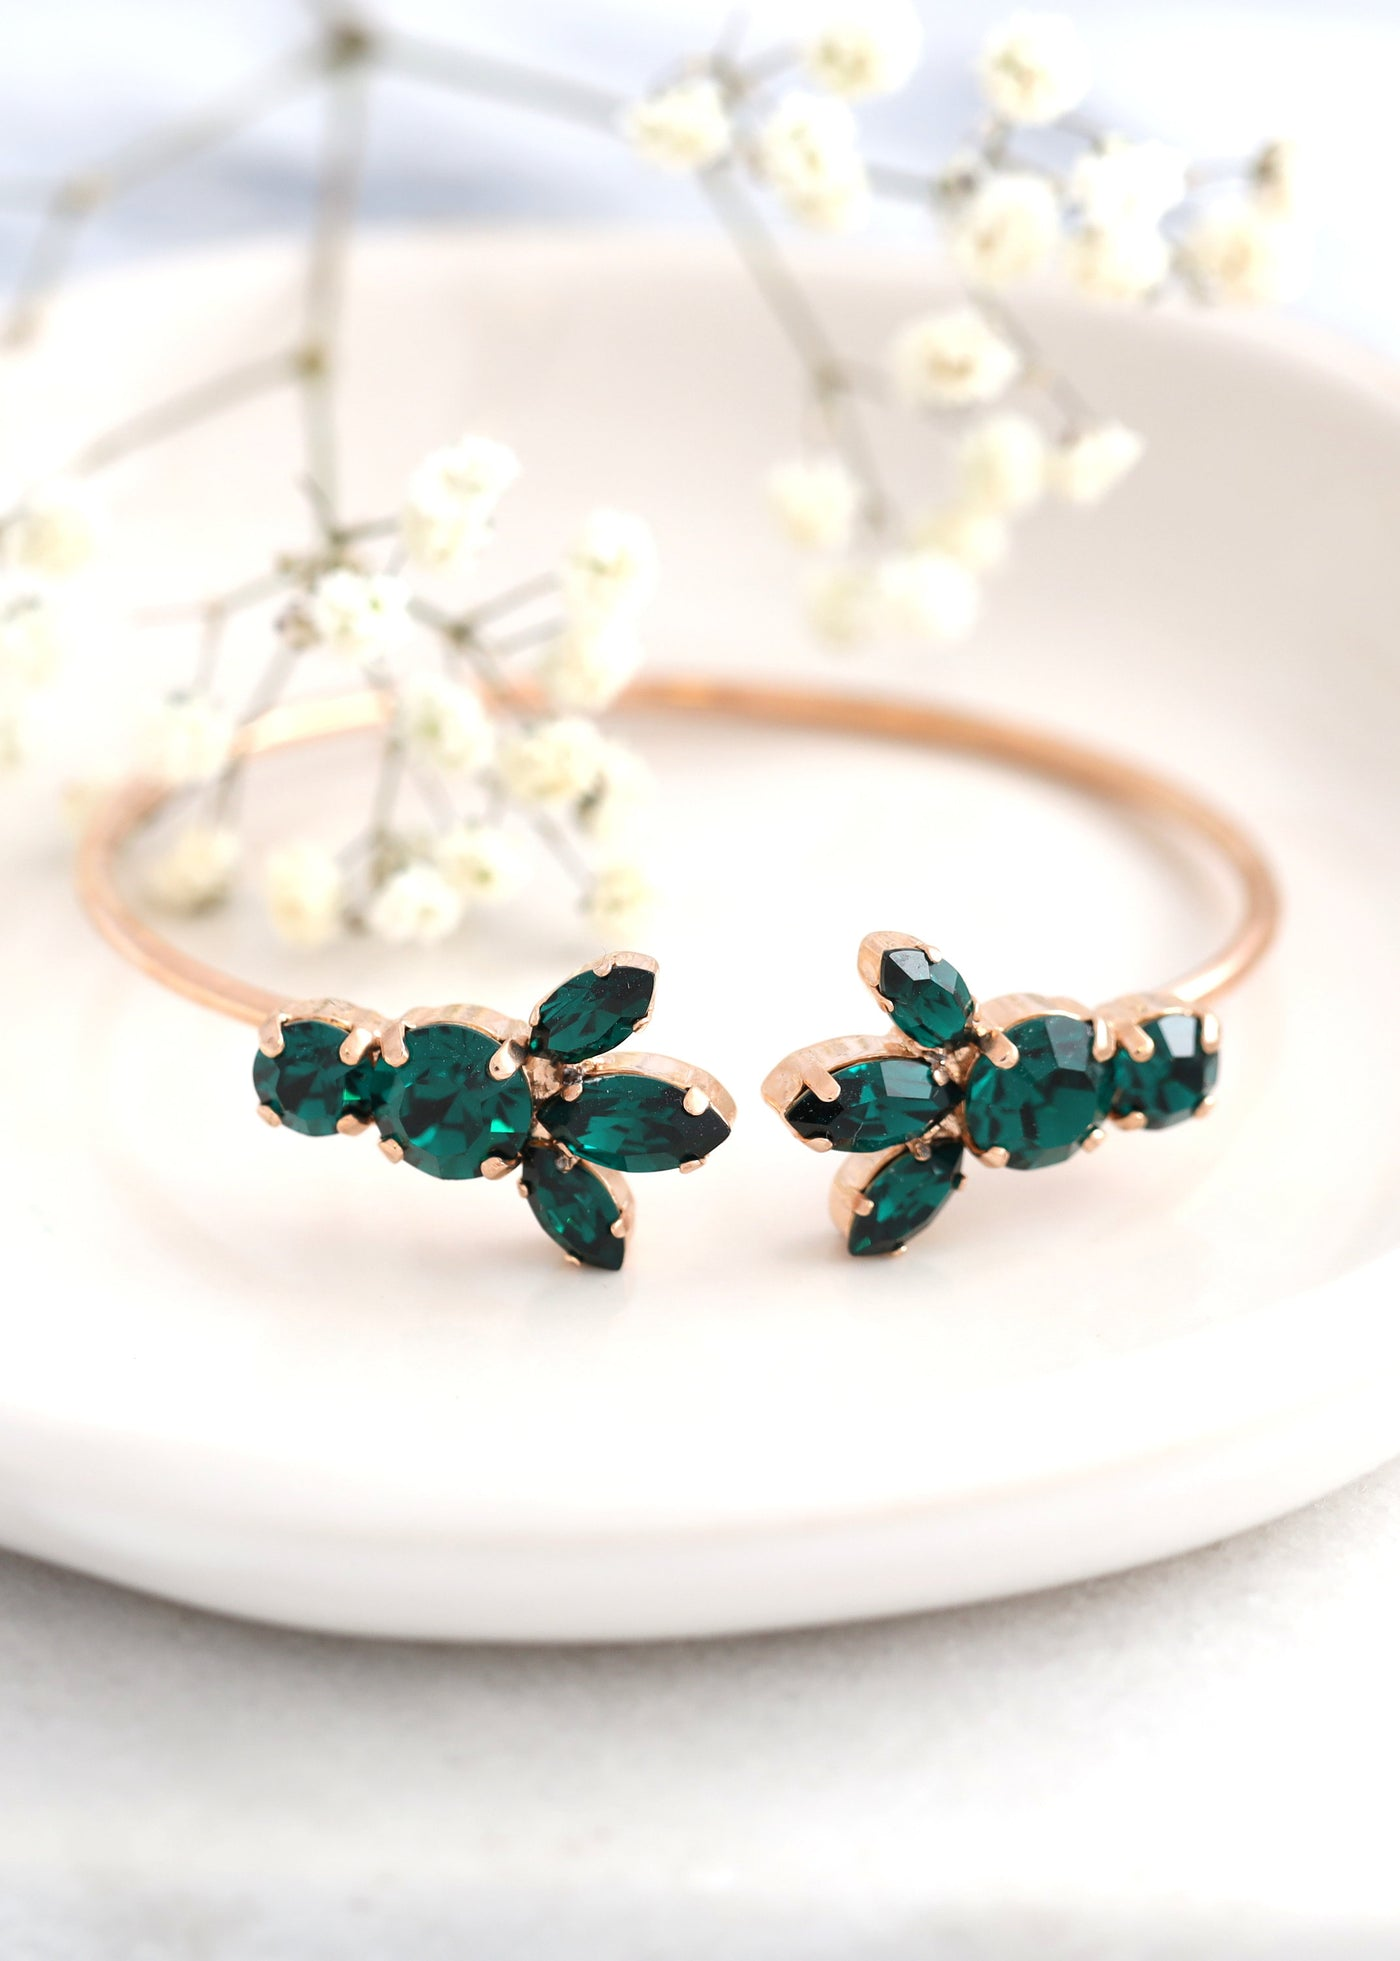 Emerald Green Bracelet, Bridal Wedding Emerald  Bracelet, Swarovski Crystal, Green Bracelet, Bridal Crystal Cuff, Bridesmaids Bracelets